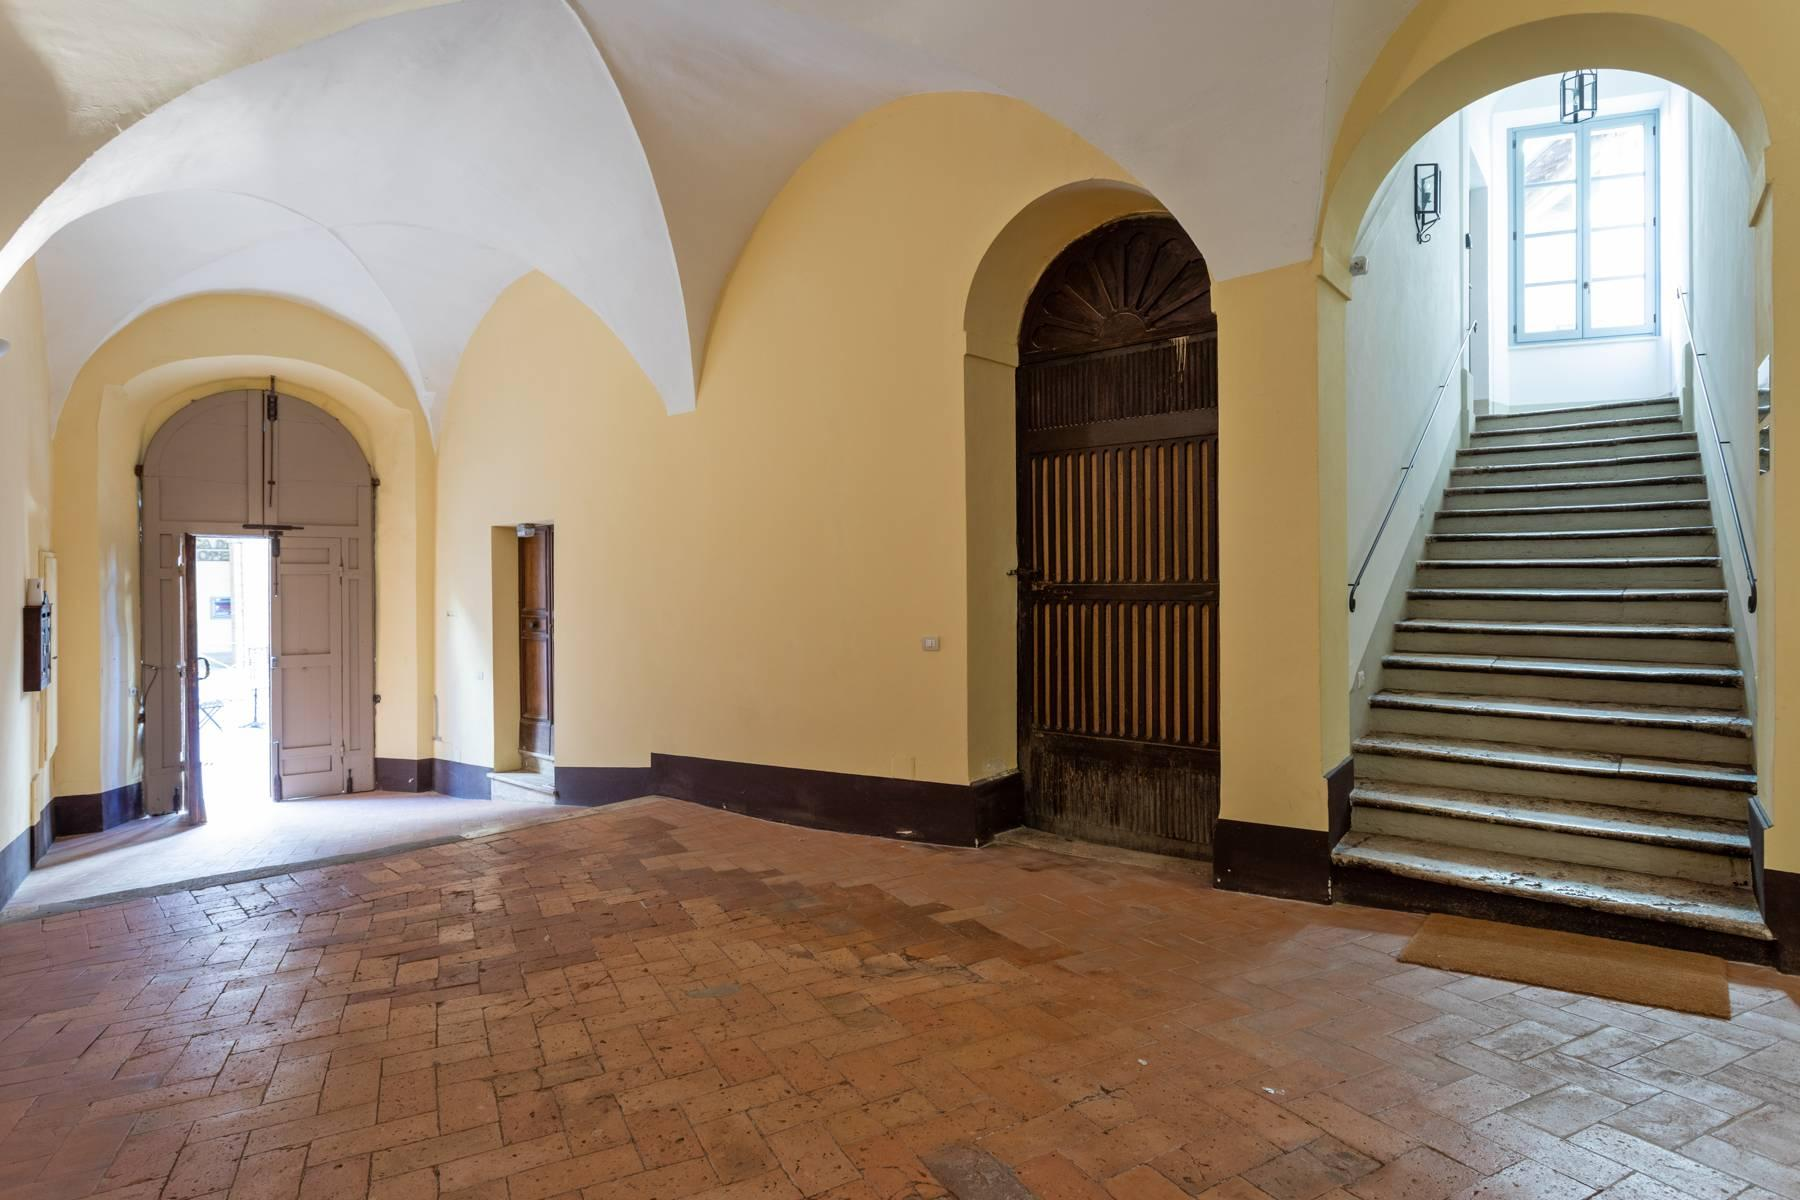 Prestigious apartment with frescoes in an historic palace - 24